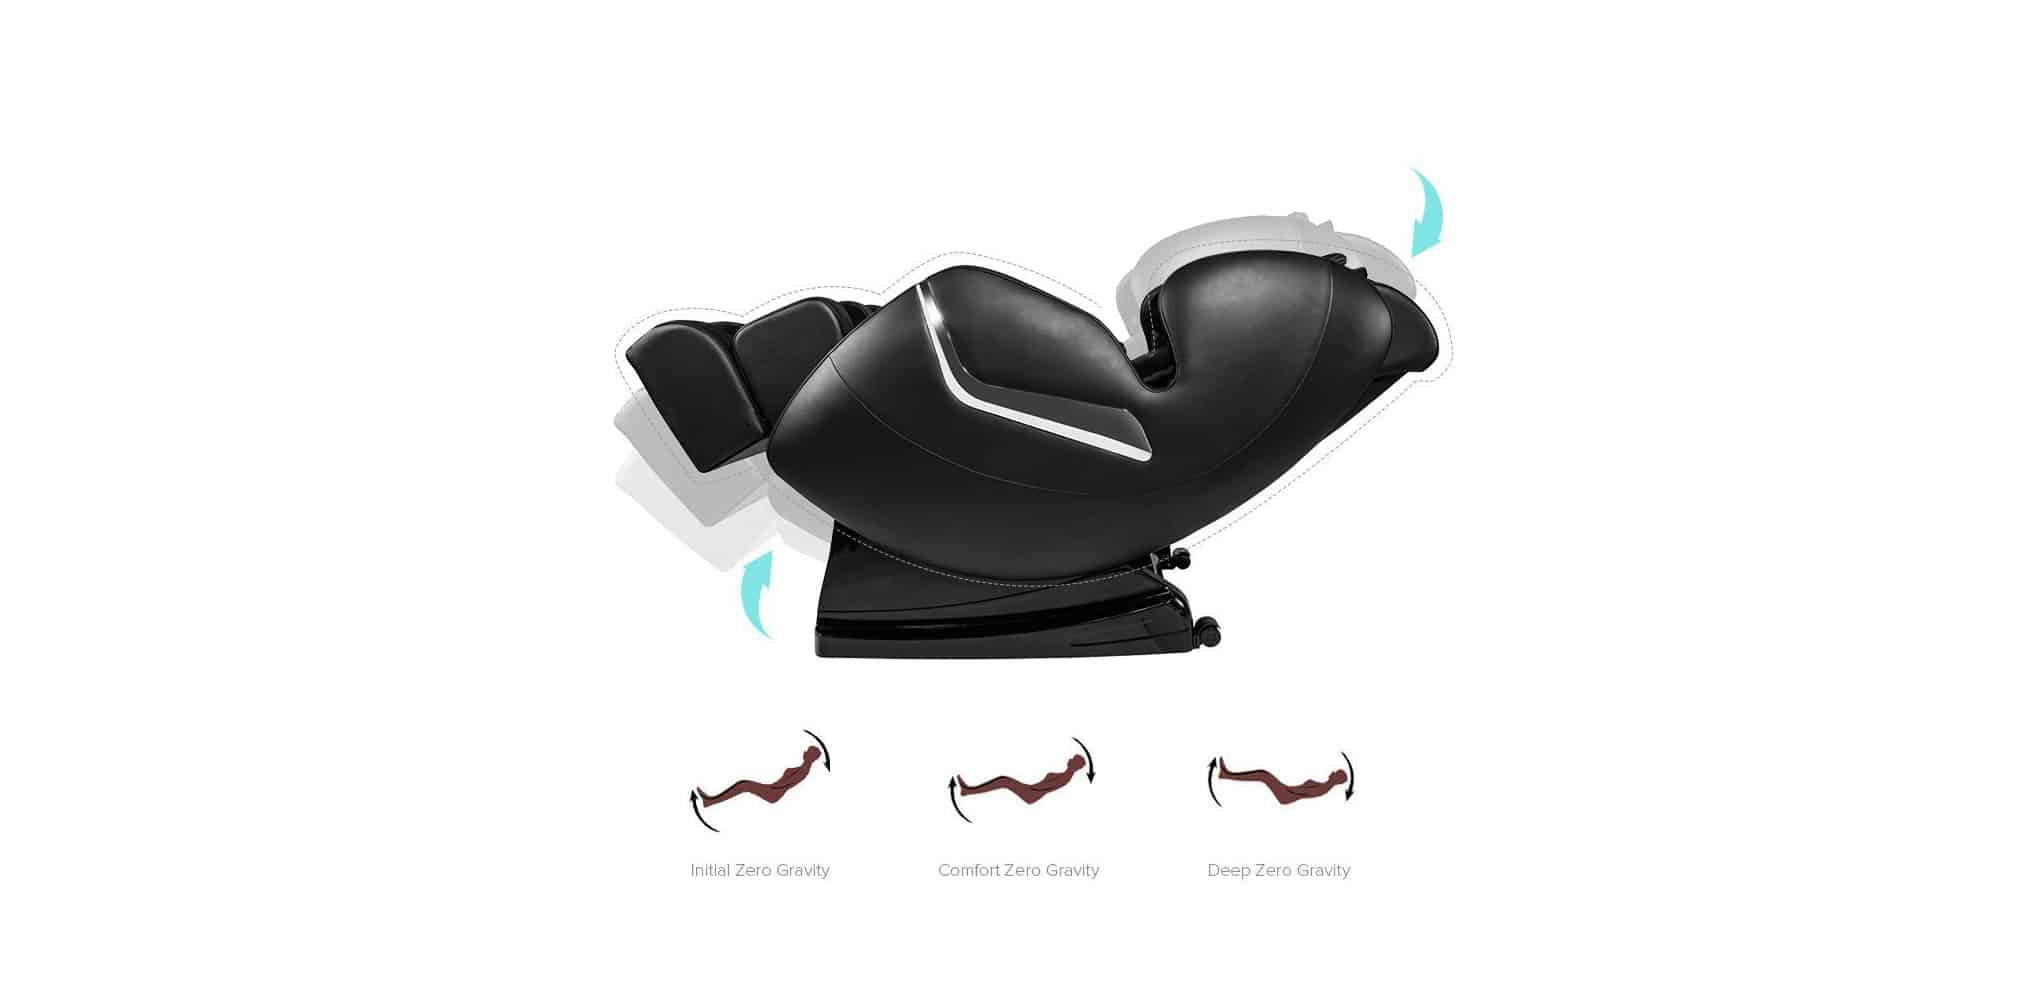 Review Of The Favor 3 Ef Bd 9cmassage Chair Recliner Heated Full Body Shiatsu Zero Gravity